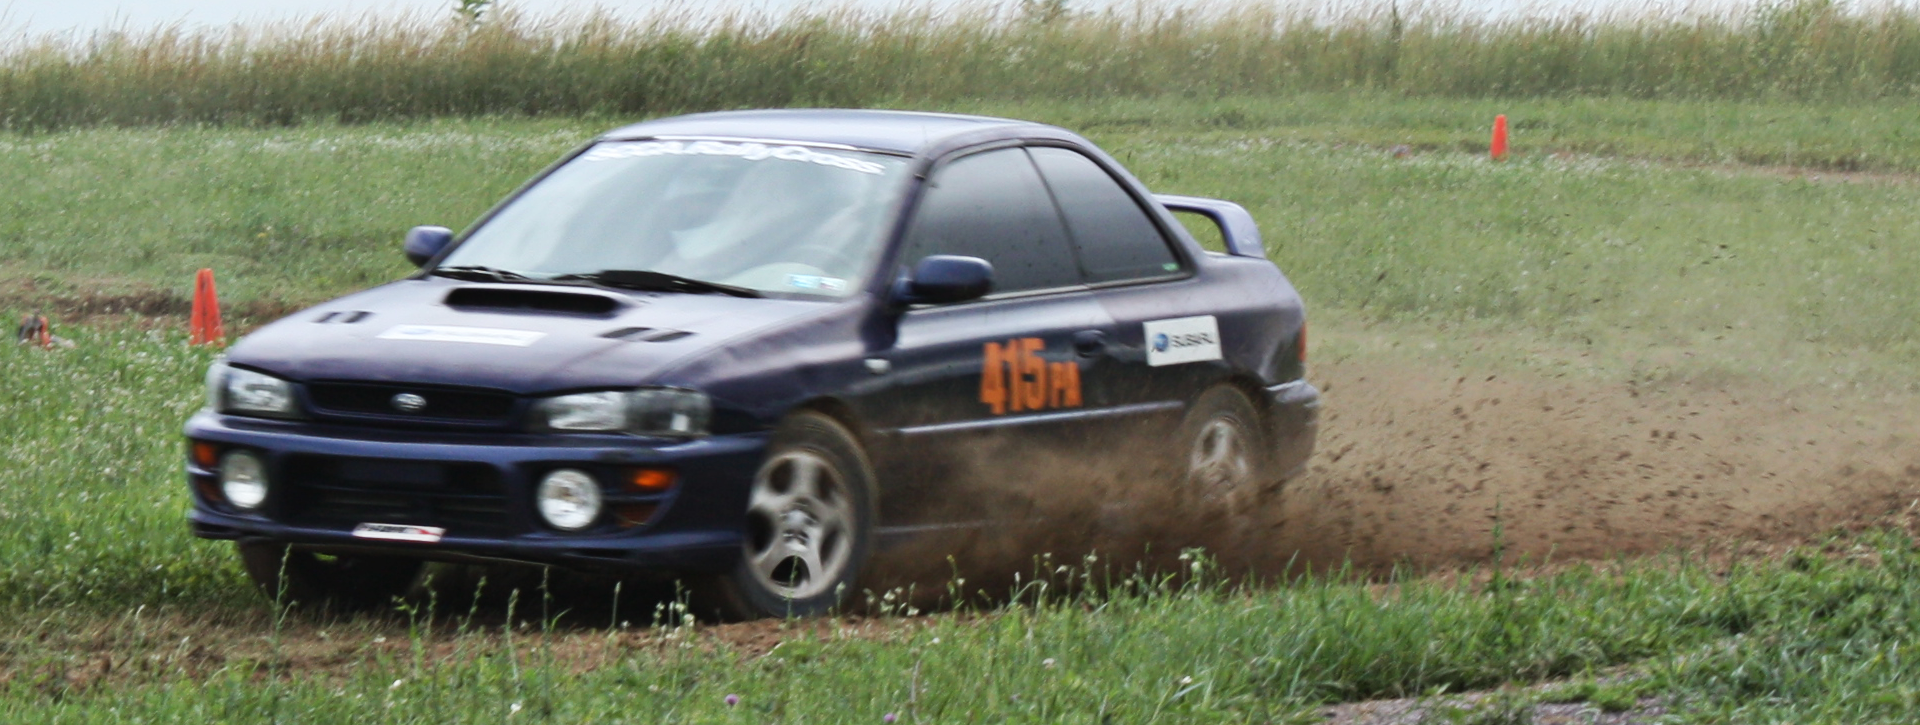 <p>Name:Bryan Roper From:Carlisle, PA Runs:Bryan is currently running in Rallycross events. When not running in events, he is on the crew for several stage rally and road racing teams. Bryan is working towards getting into the autocross and road racing scene within the next season or two. Drives: Currently Bryan [&hellip;]</p>